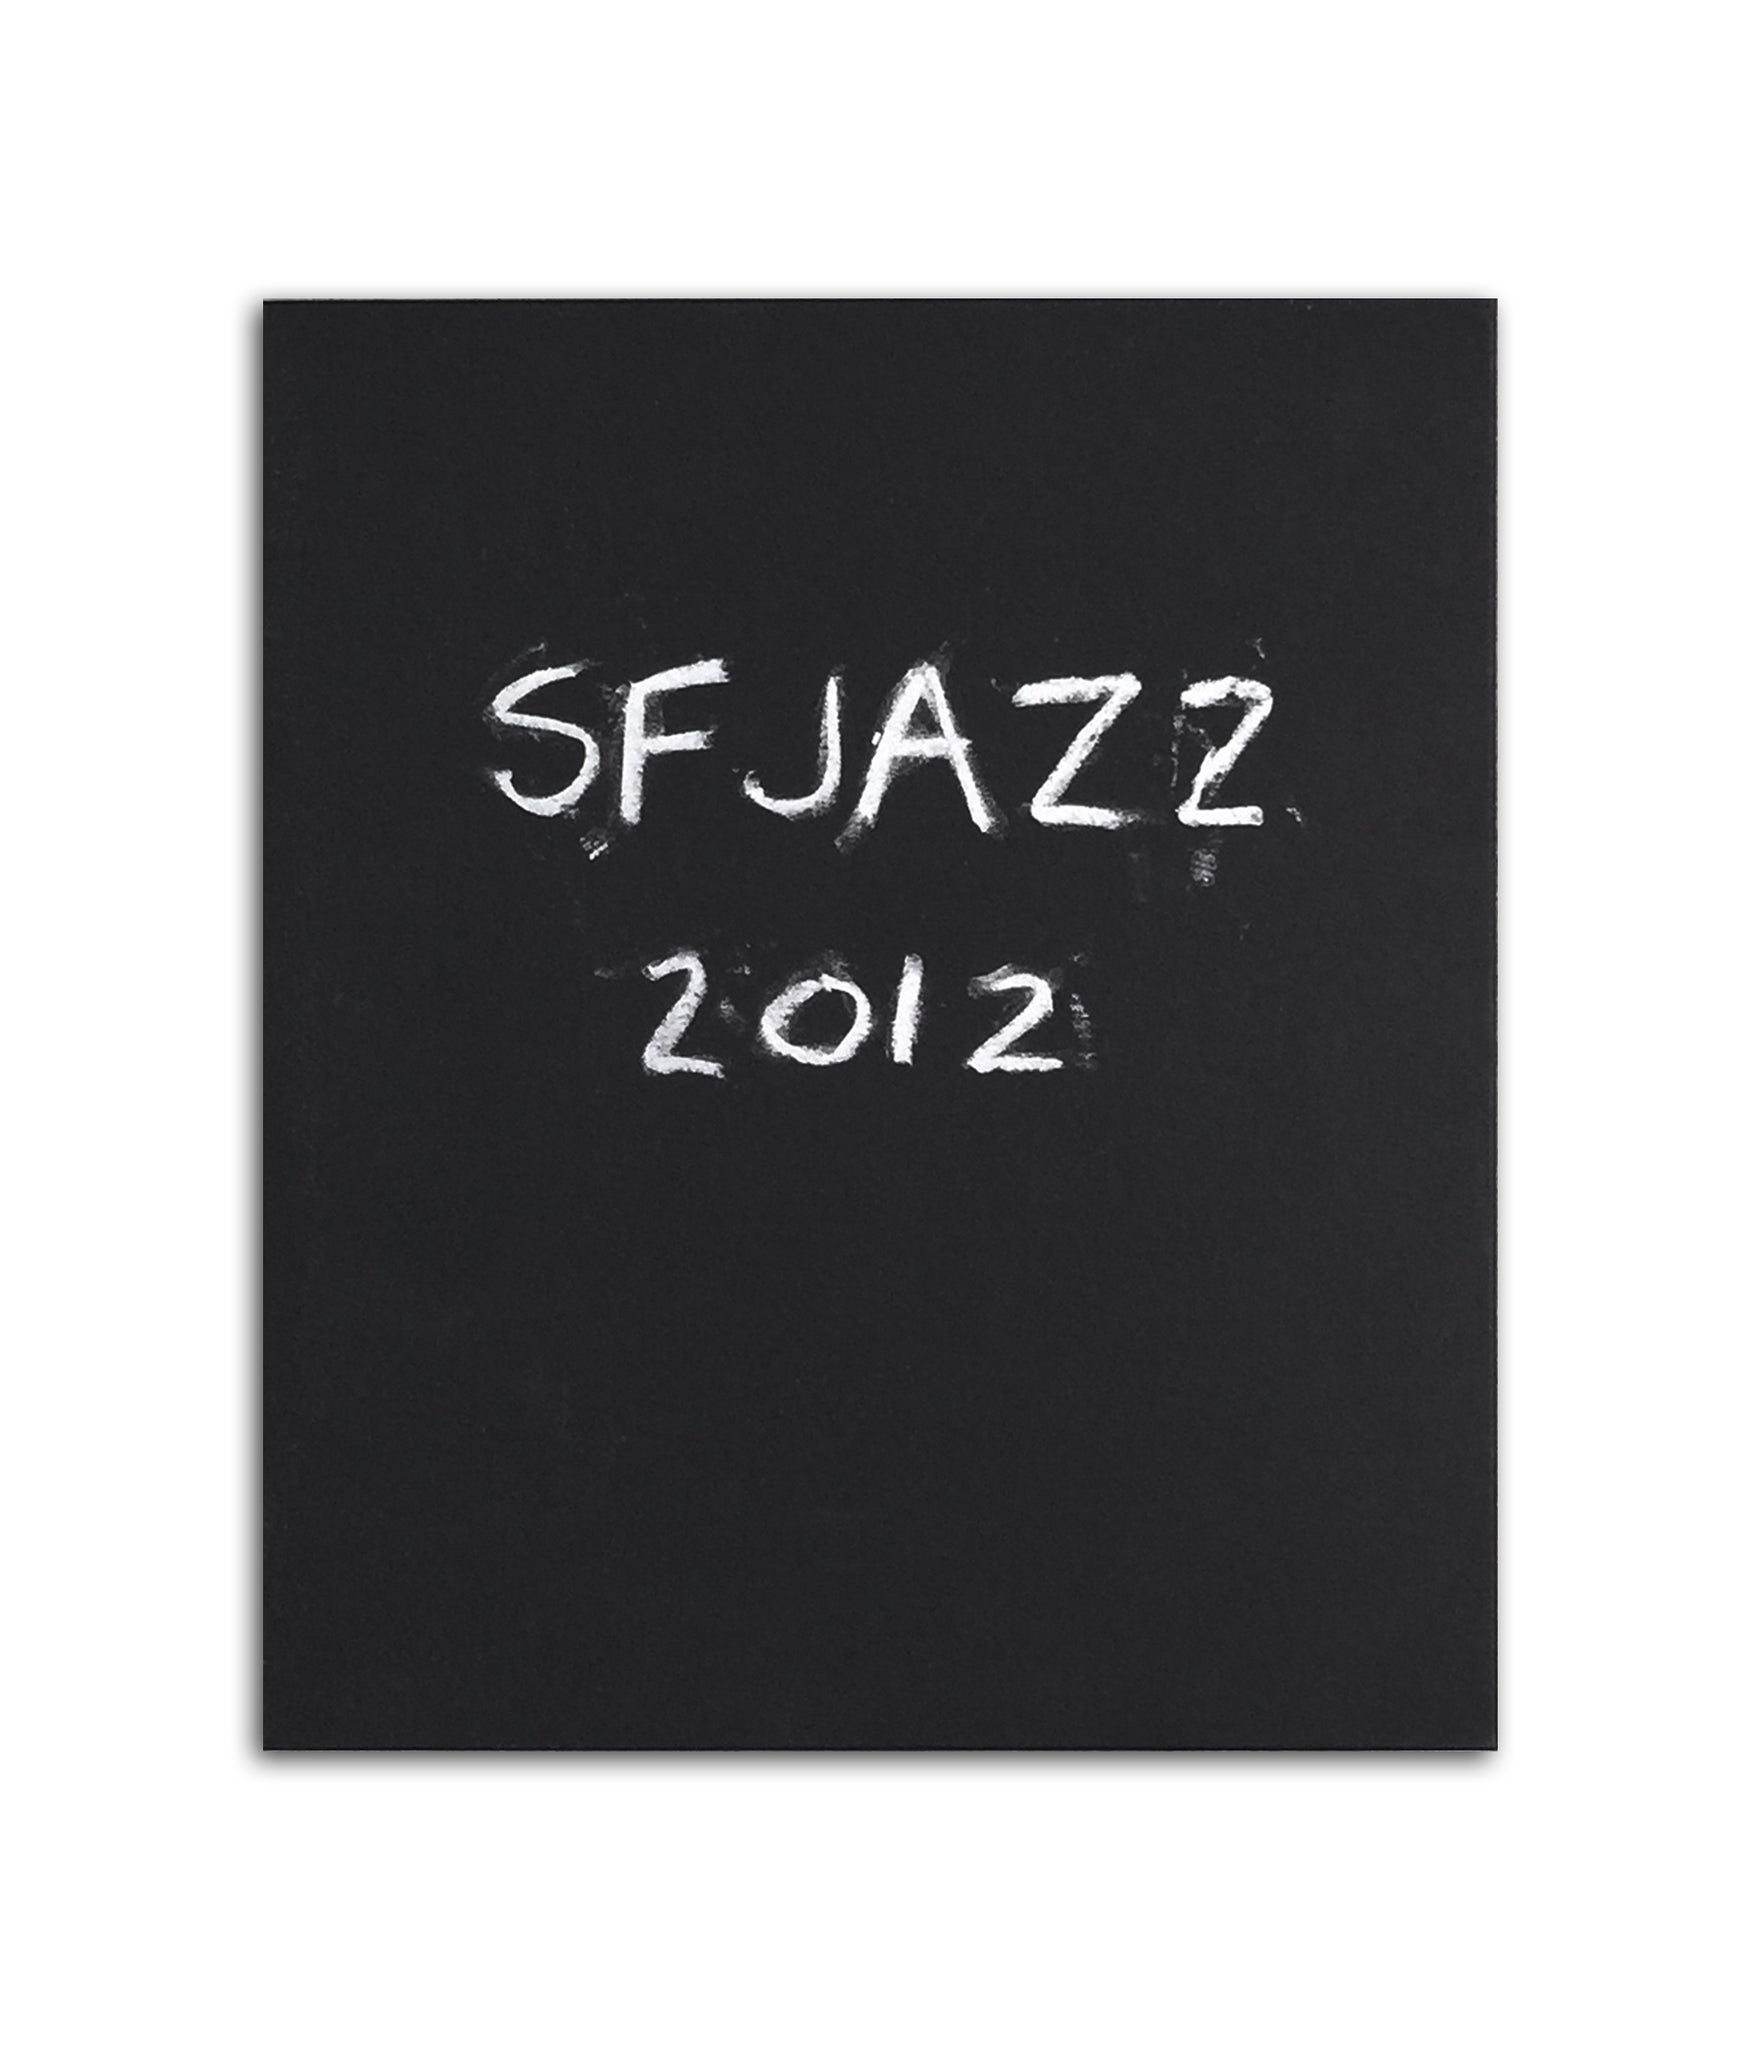 SF Jazz No.2